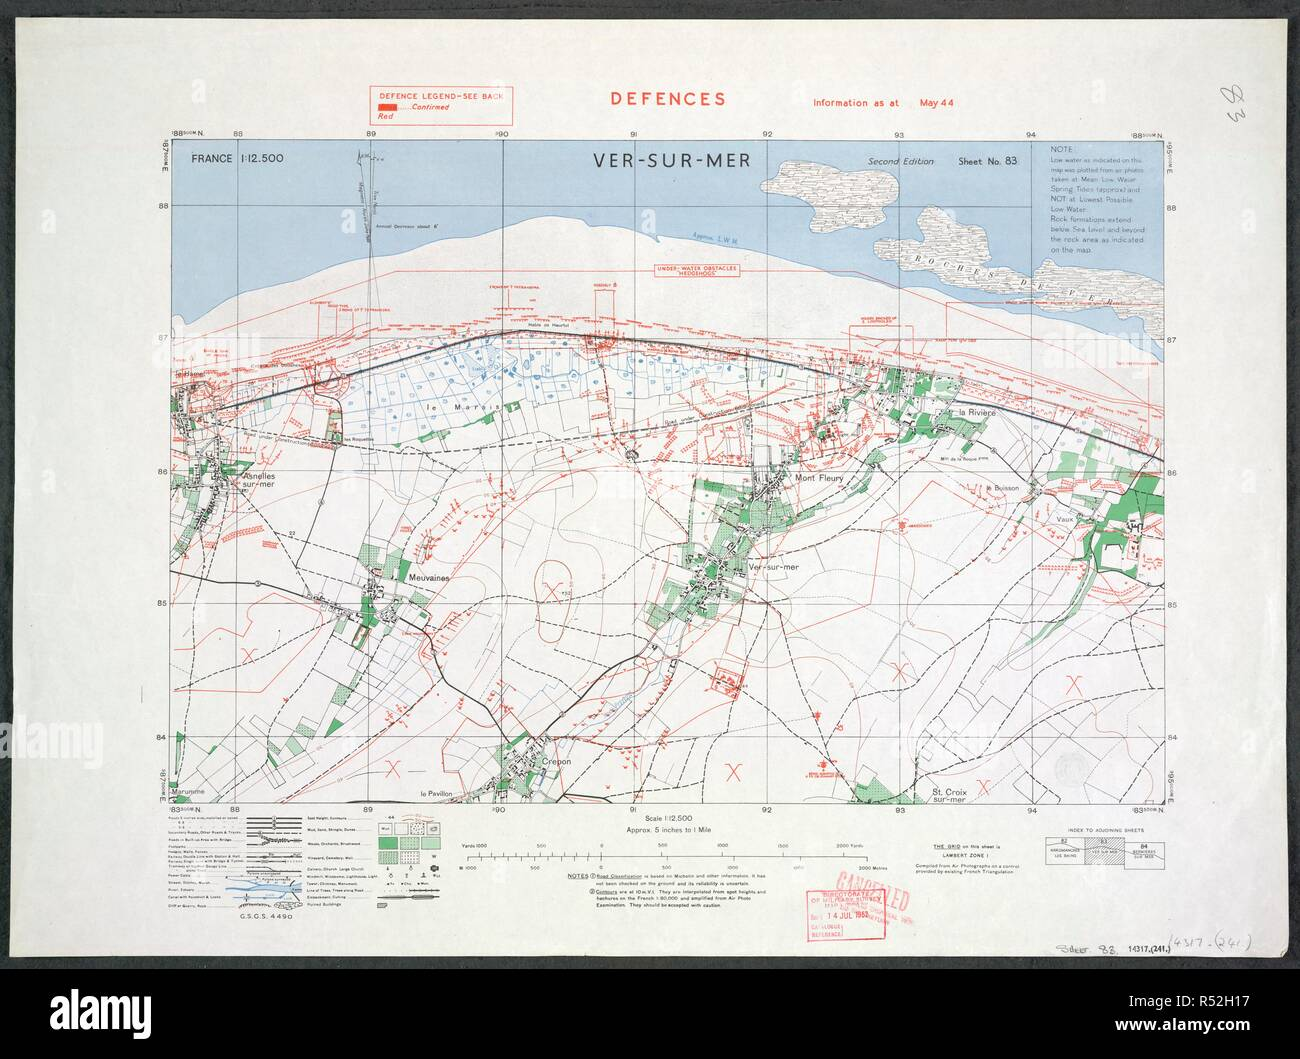 D Day Invasion Map Stockfotos & D Day Invasion Map Bilder - Alamy Dday Map on